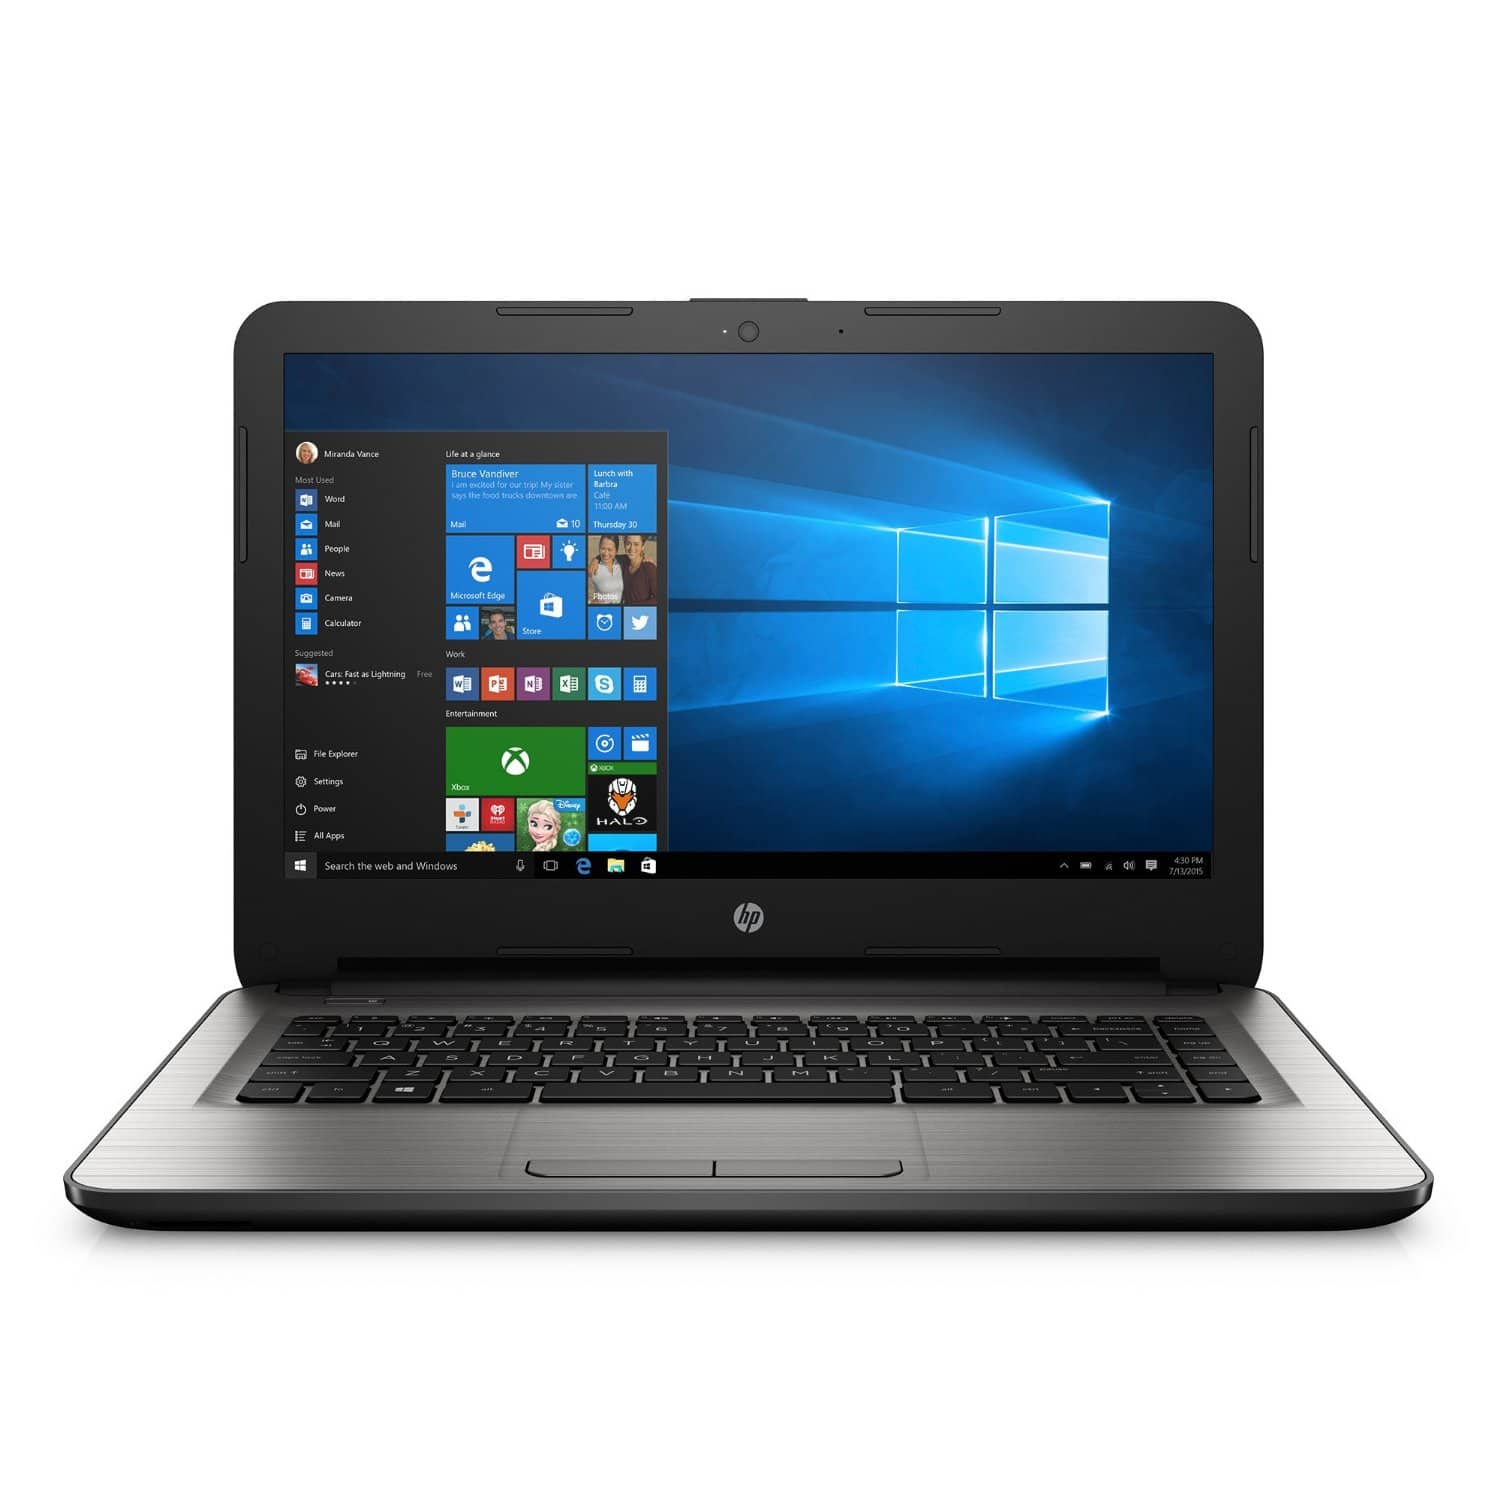 """HP 14-an013nr 14"""" 1080P IPS, AMD E2-7110, 4GB Ram, 32GB eMMC, WiFi AC, Win10 Home @ $200 with F/S"""